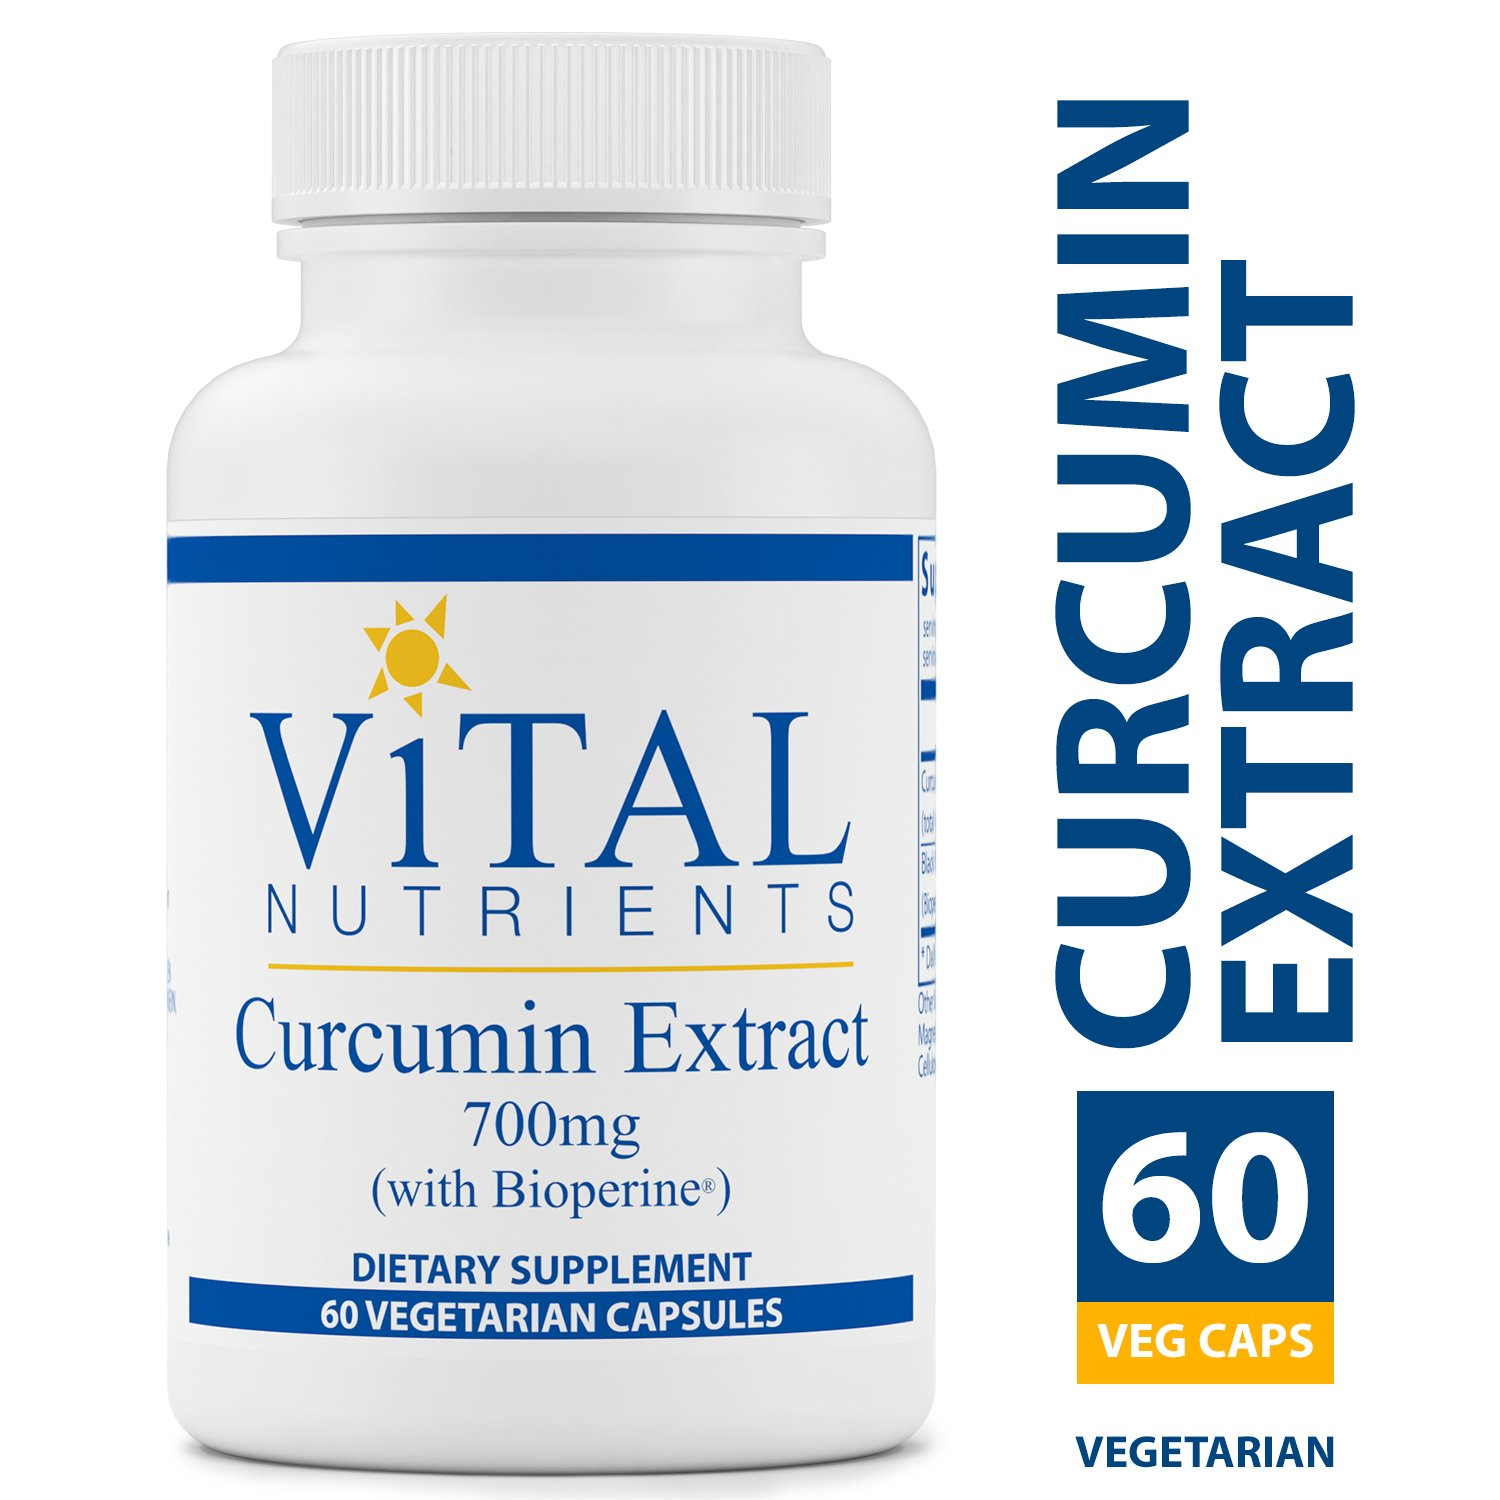 Vital Nutrients - Curcumin Extract 700 mg (with Bioperine) - Nutritional Support for Normal Tissue Health - 60 Capsules per Bottle